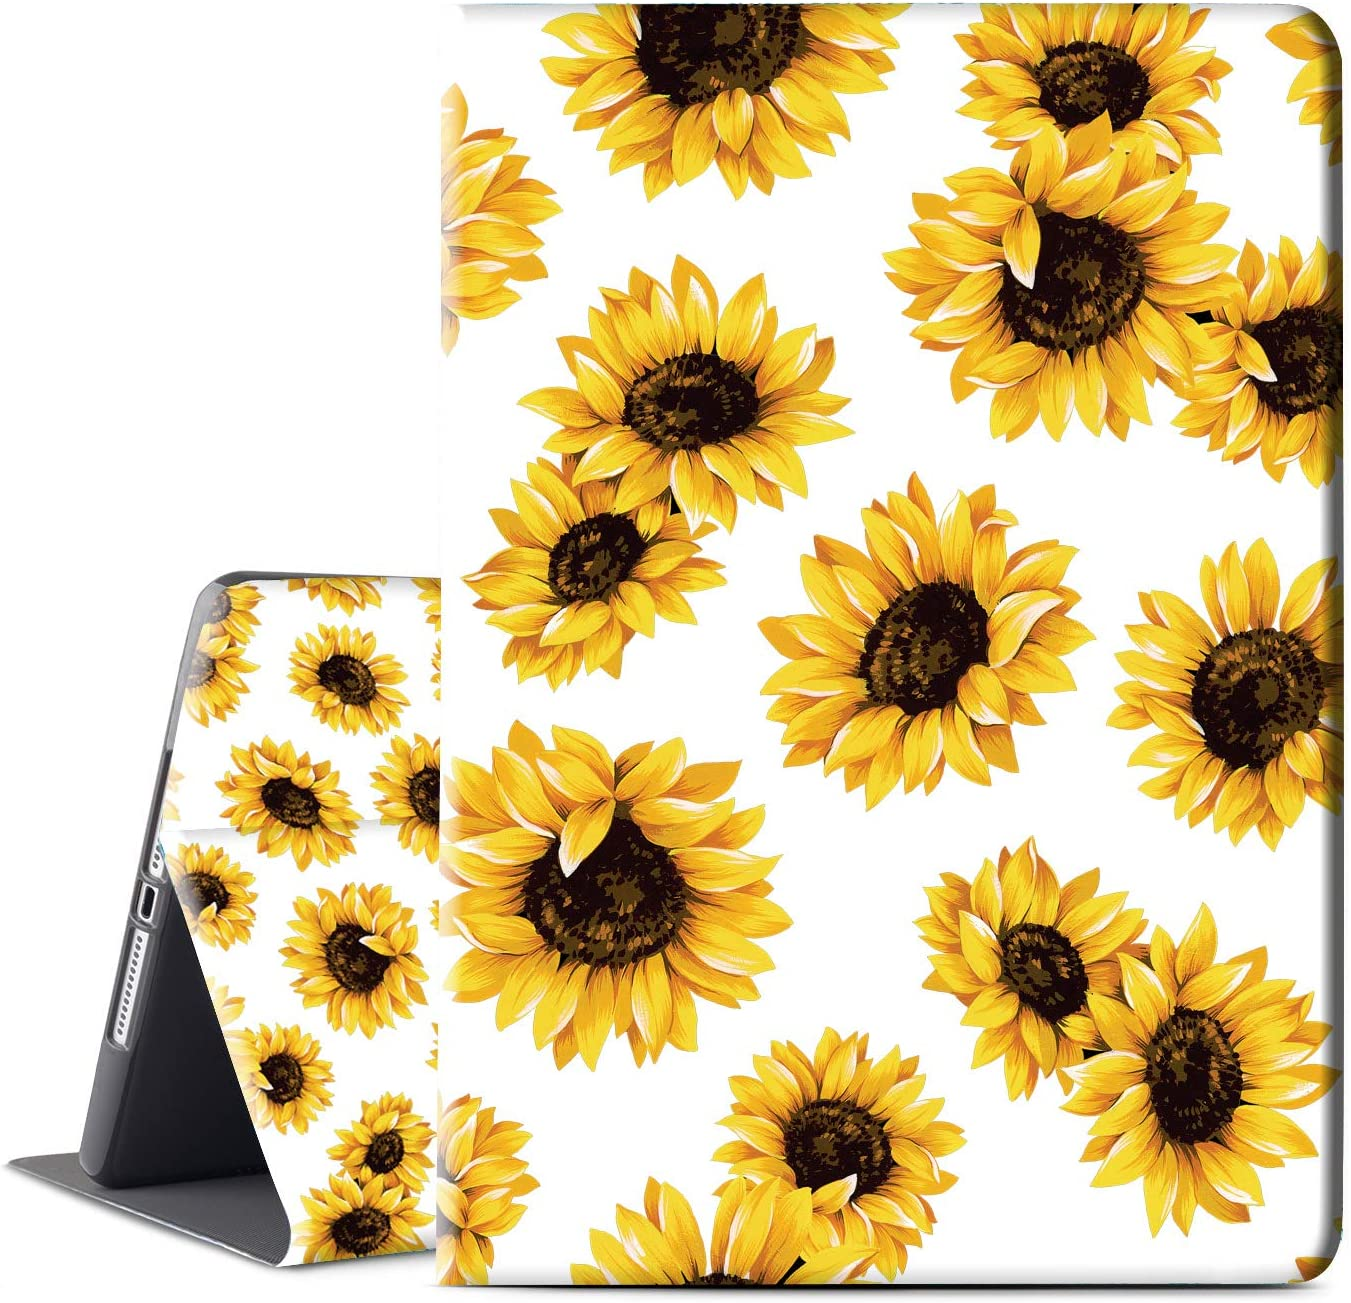 """INSSISAIN Smart Case for iPad 8th Generation Case / iPad 7th Generation iPad 10.2 Case 2020 2019, PU Leather Protective Cover with Auto Sleep for 10.2"""" iPad 8th Gen & 7th Gen, Sunflower"""